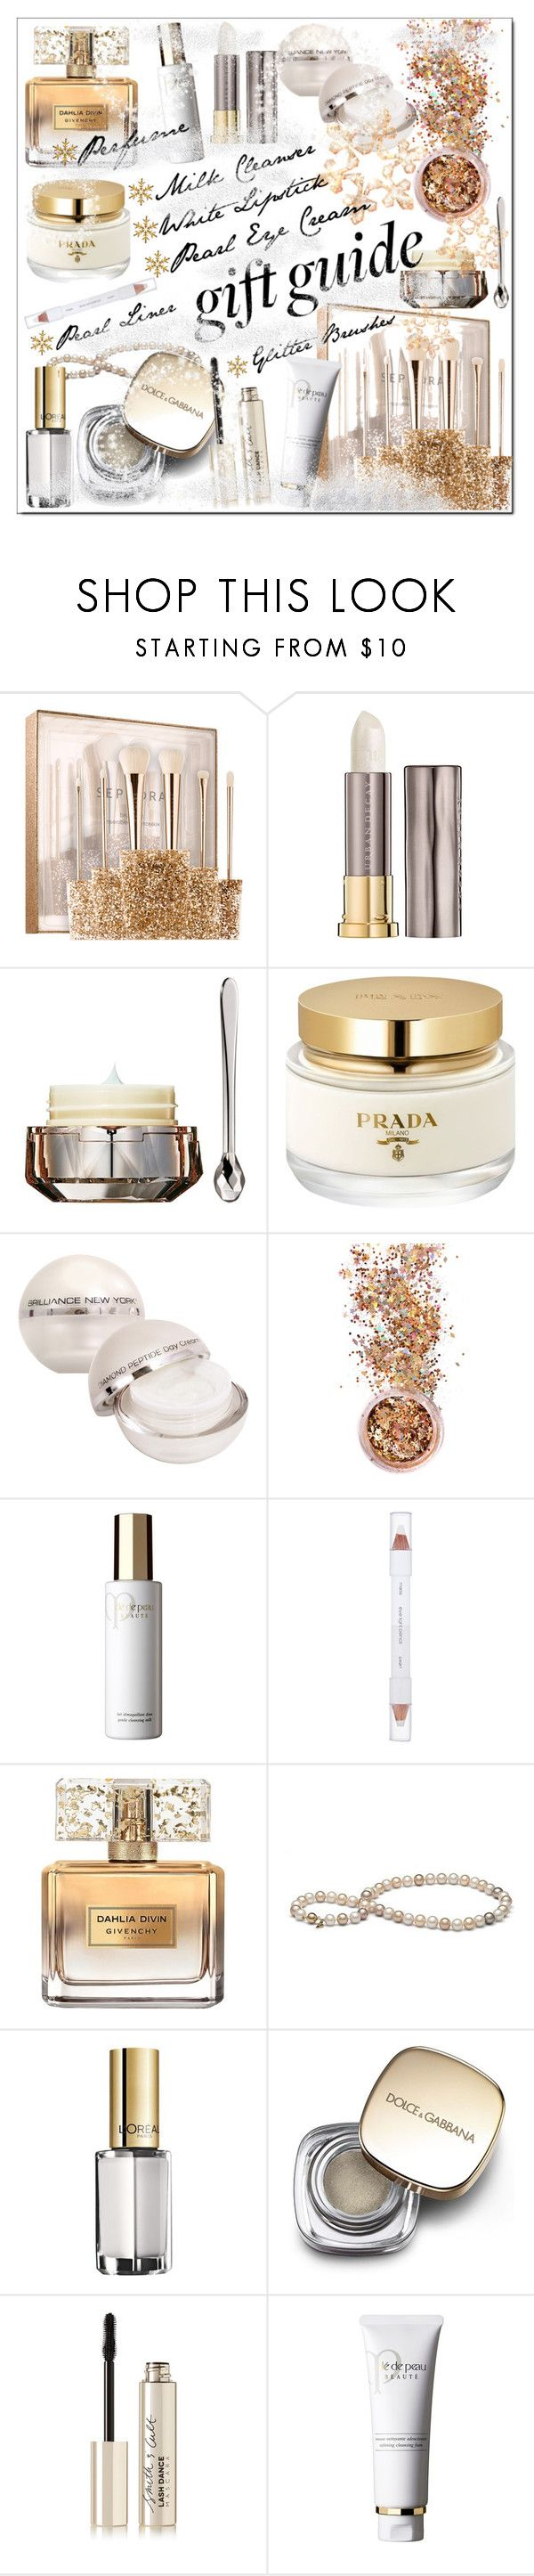 """""""Holiday Gift Guide * Beauty Faves"""" by calamity-jane-always ❤ liked on Polyvore featuring beauty, Sephora Collection, Urban Decay, Clé de Peau Beauté, Prada, Brilliance New York, In Your Dreams, shu uemura, Givenchy and L'Oréal Paris"""